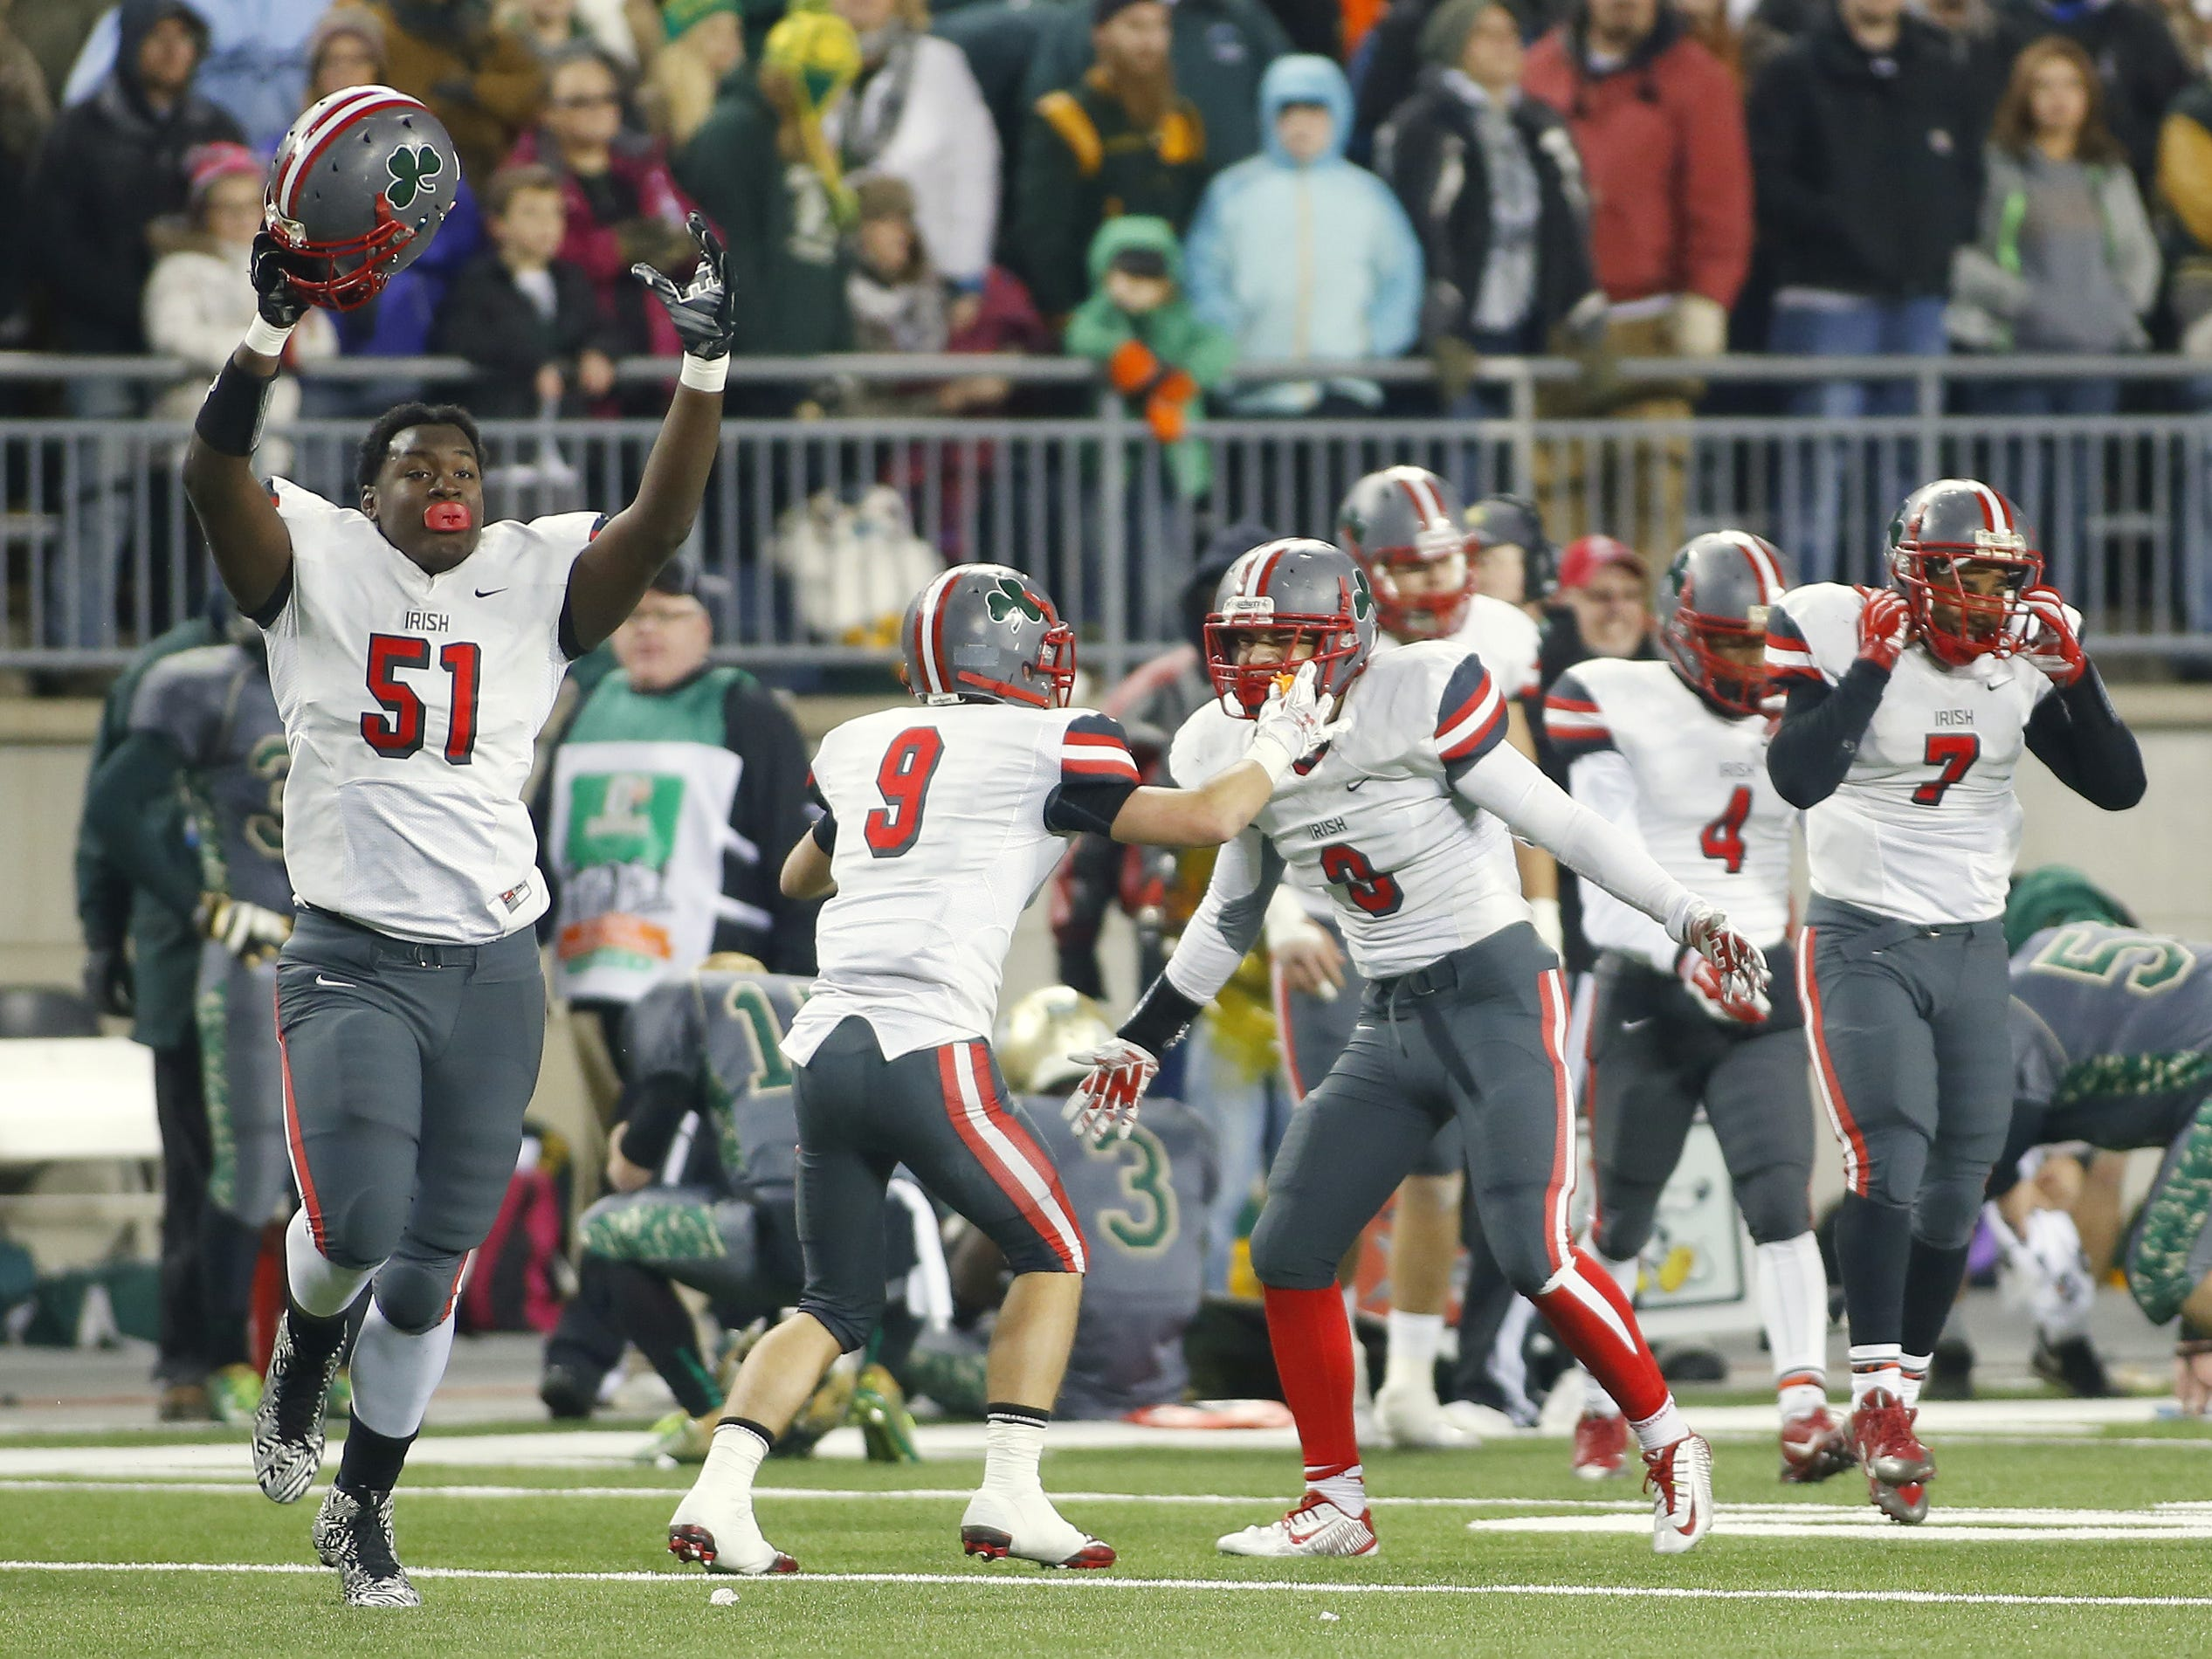 Toledo Central Catholic's James Hudson (51) and teammates celebrate the victory over Athens in the second half of the Ohio high school Division III championship football game at Ohio Stadium.